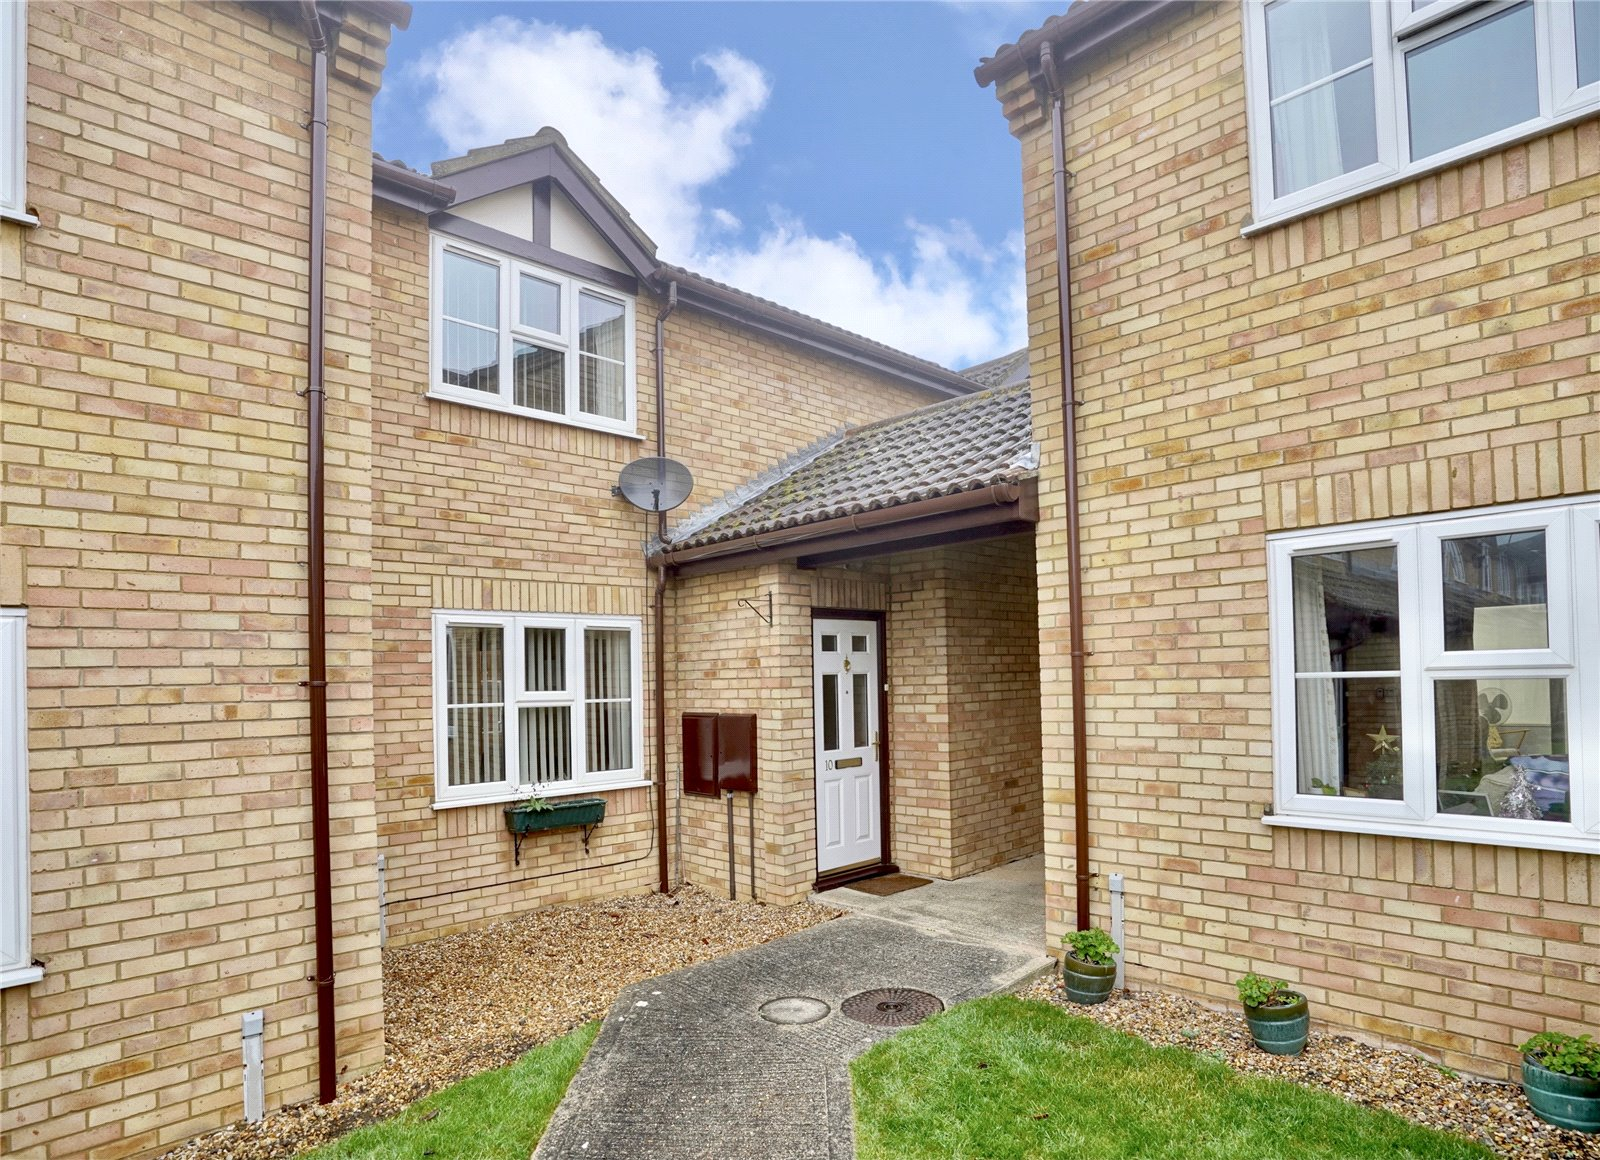 2 bed house for sale in St. Ives, PE27 5QZ  - Property Image 1